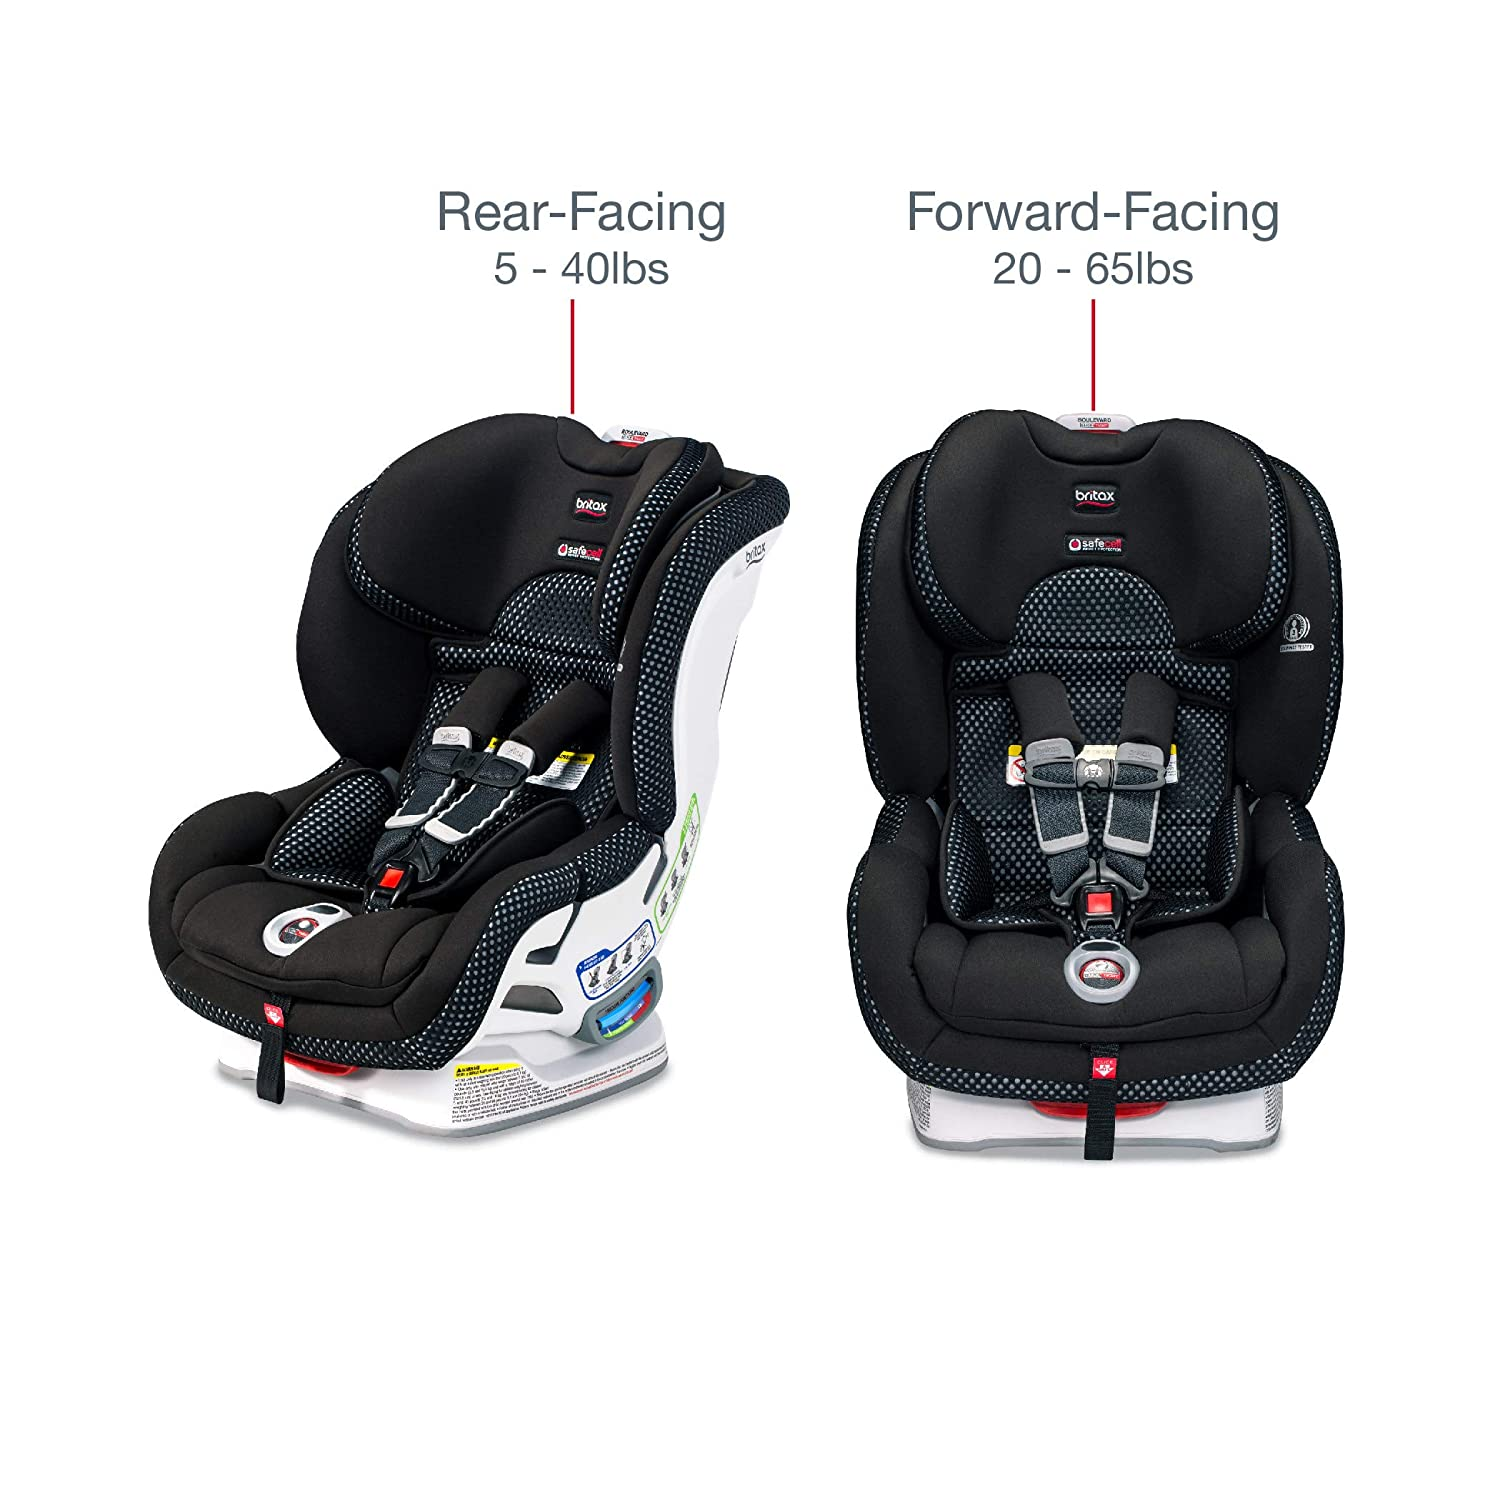 Quick Adjust Harness Britax B-Safe Ultra Infant Car Seat StayClean Fabric with Nanotex Technology 2 Layer Impact Protection Easy Installation